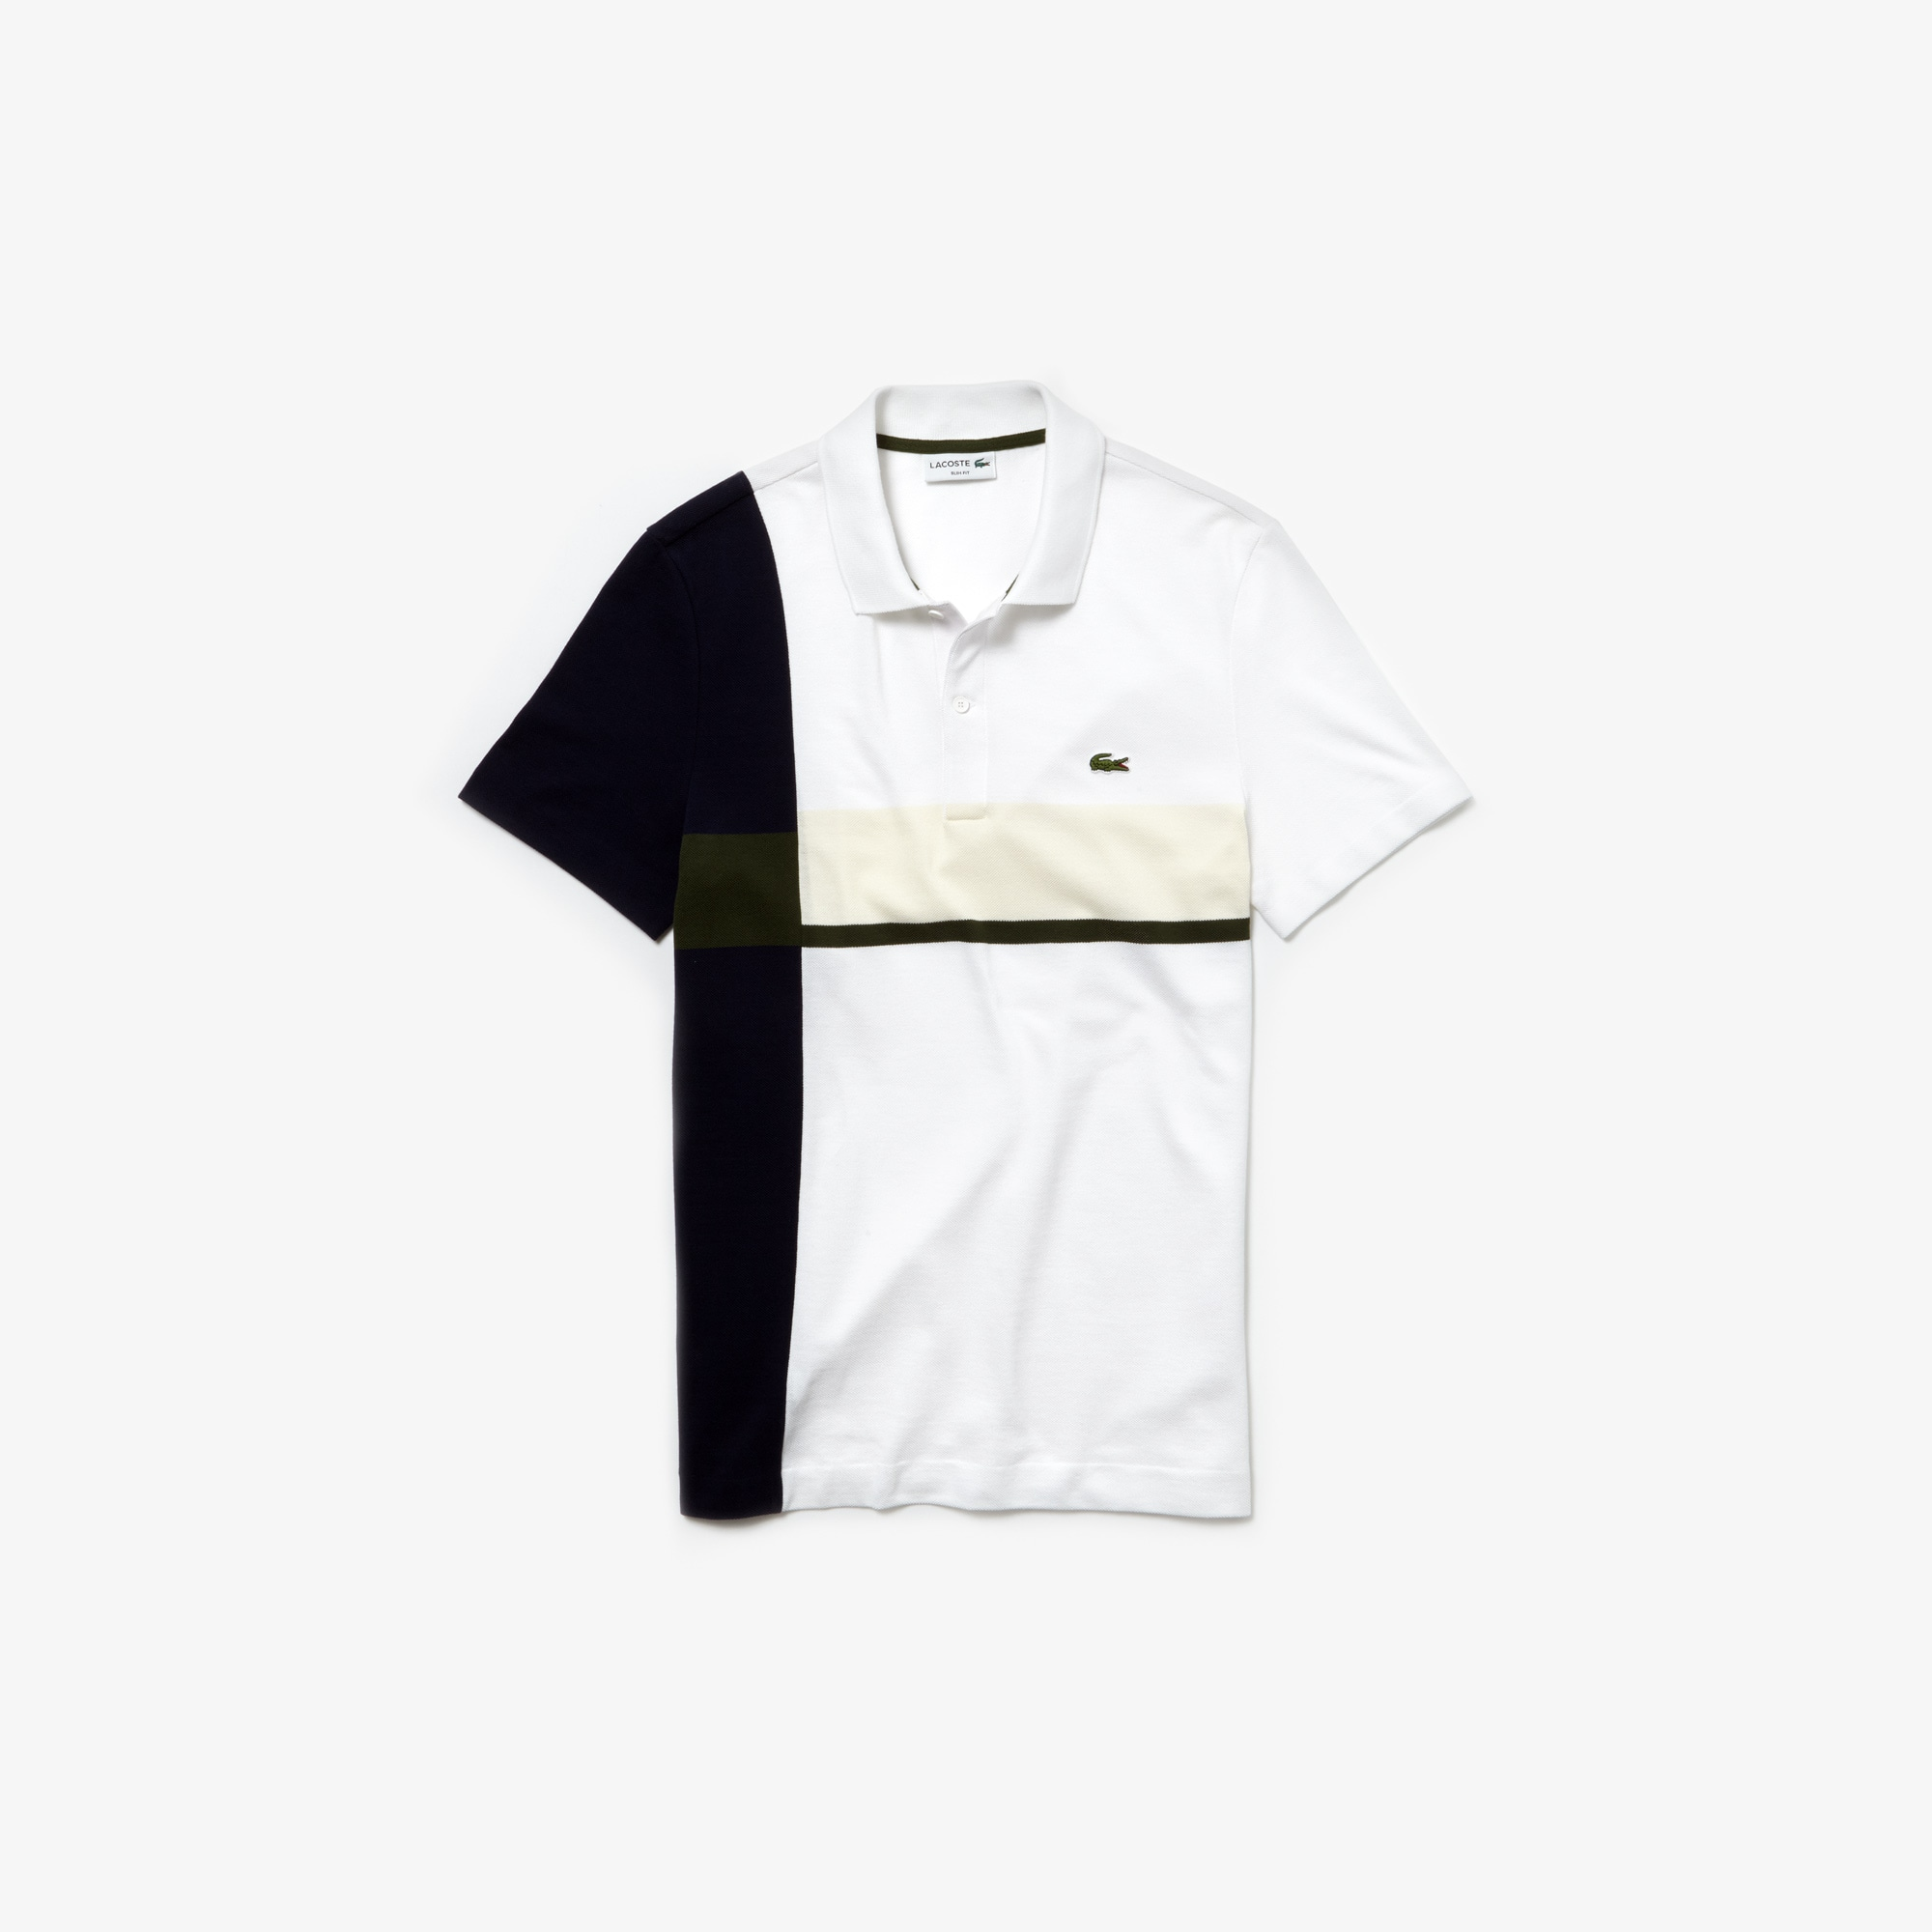 51e2eae621 Men's Lacoste Slim Fit Colourblock Cotton Petit Piqué Polo Shirt